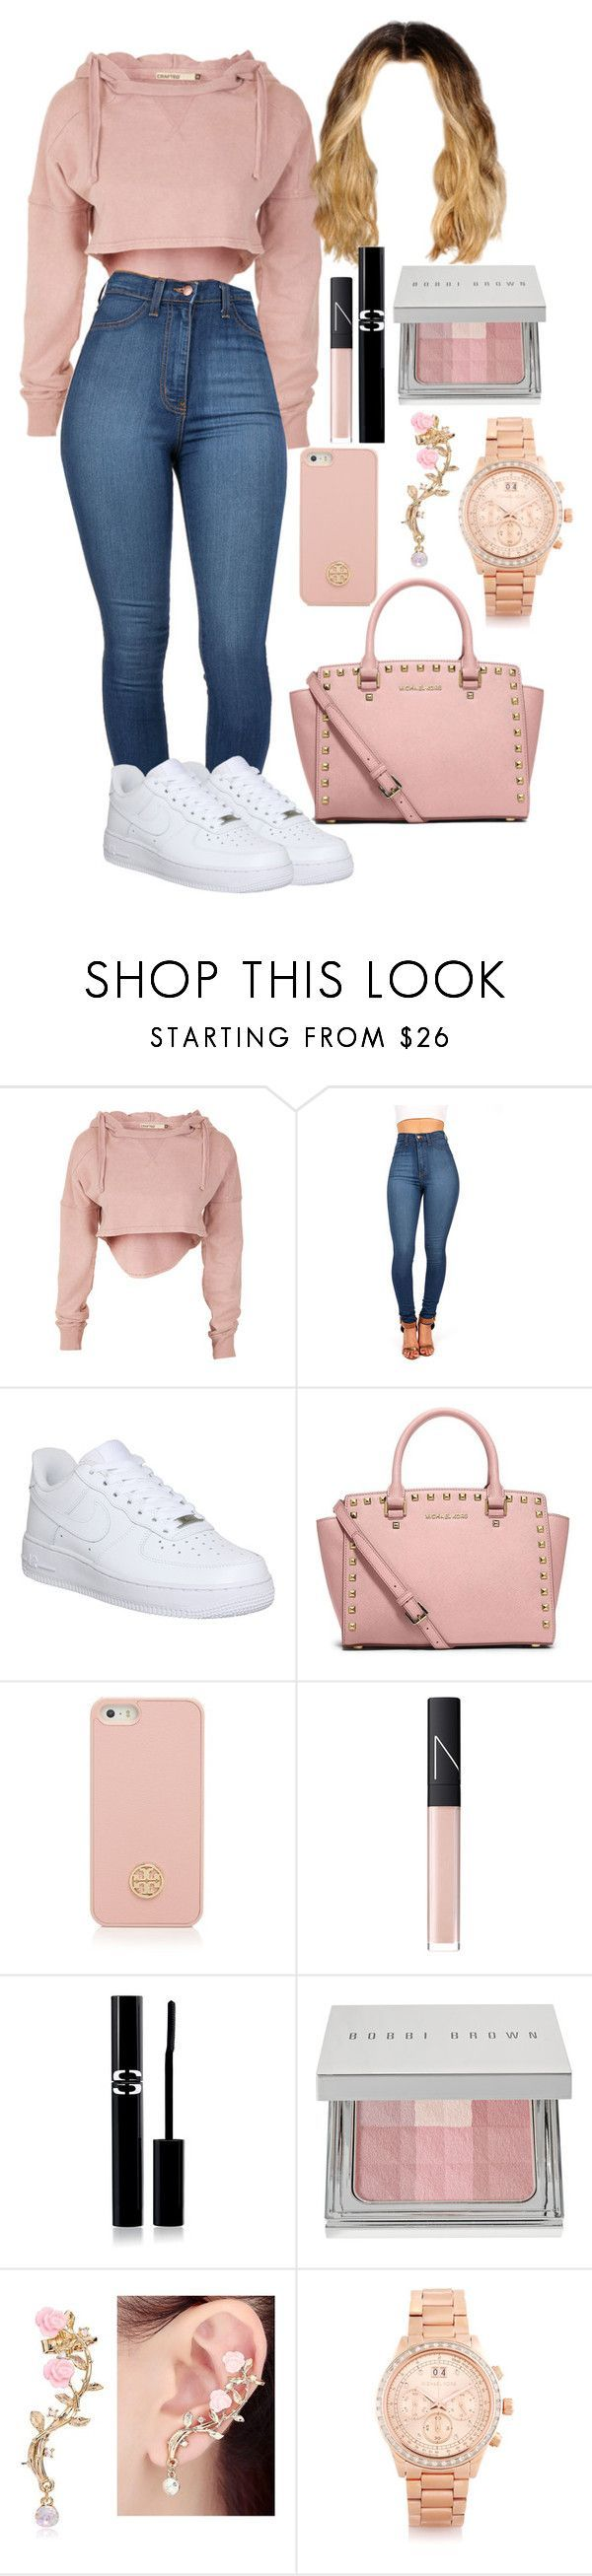 Untitled #35 by yaritzaj ❤ liked on Polyvore featuring NIKE, MICHAEL Michael Kors, Tory Burch, NARS Cosmetics, Sisley, Bobbi Brown Cosmetics and Michael Kors